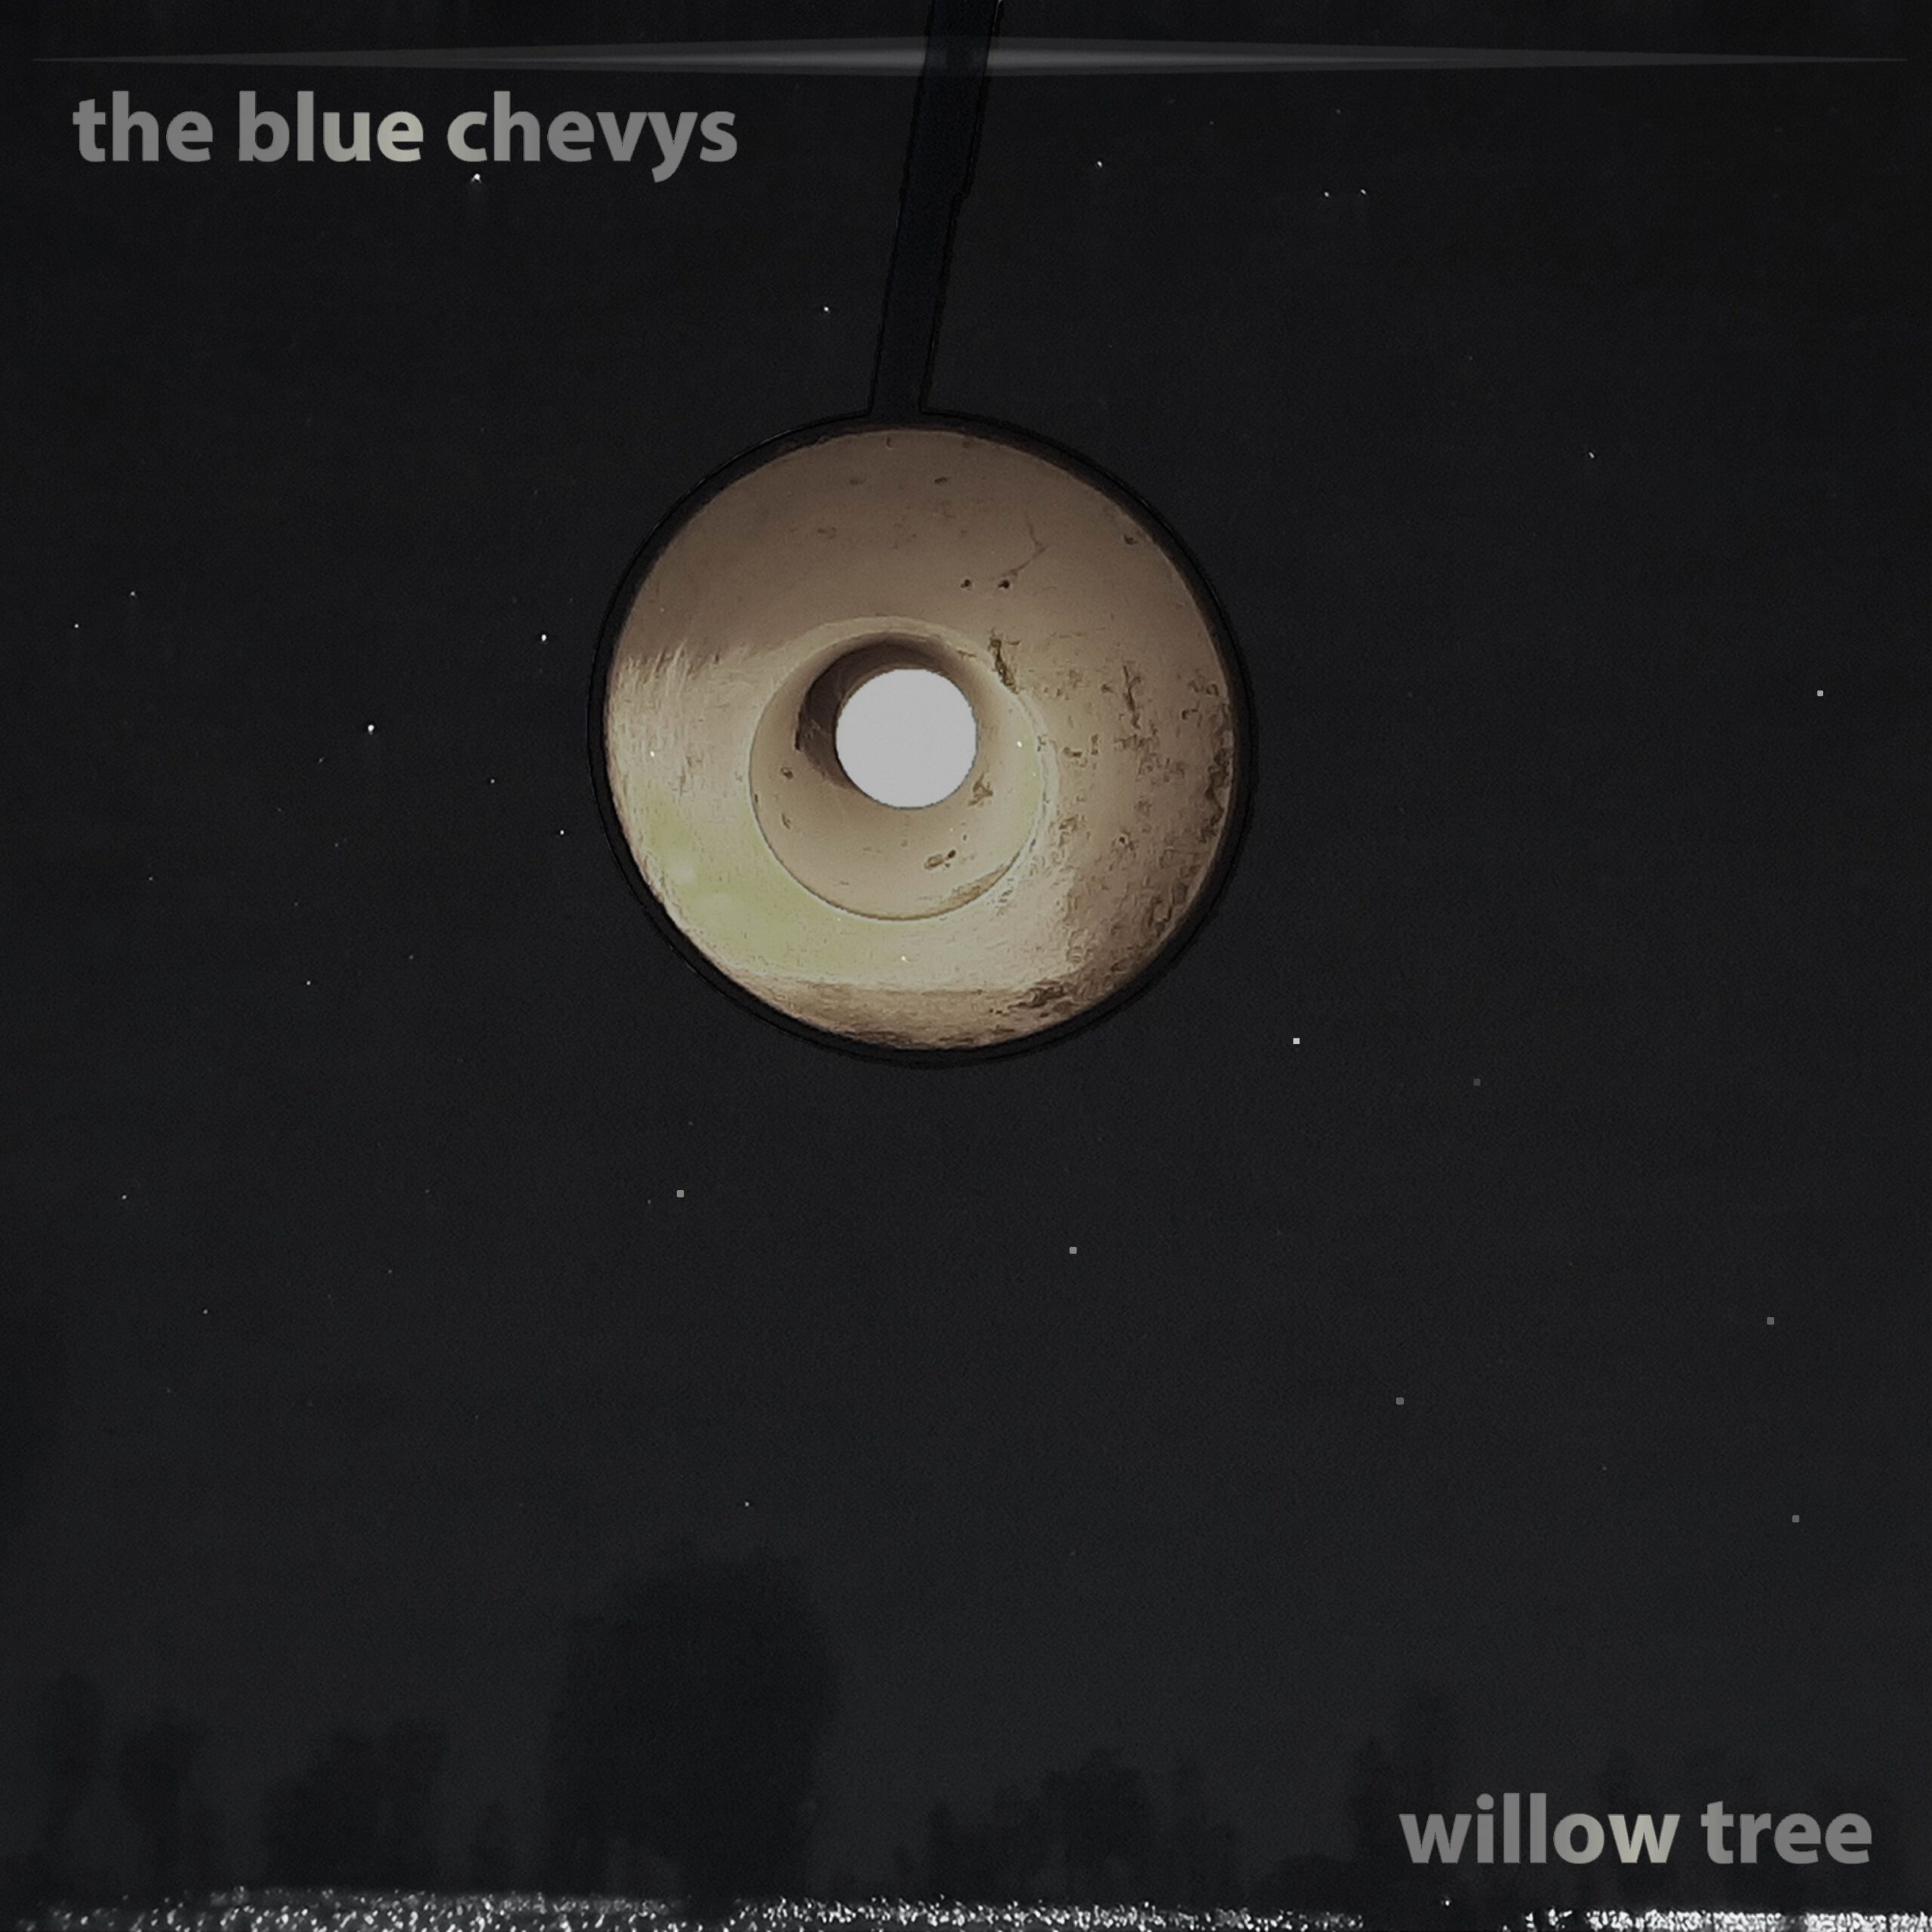 The Blue Chevys - Willow Tree